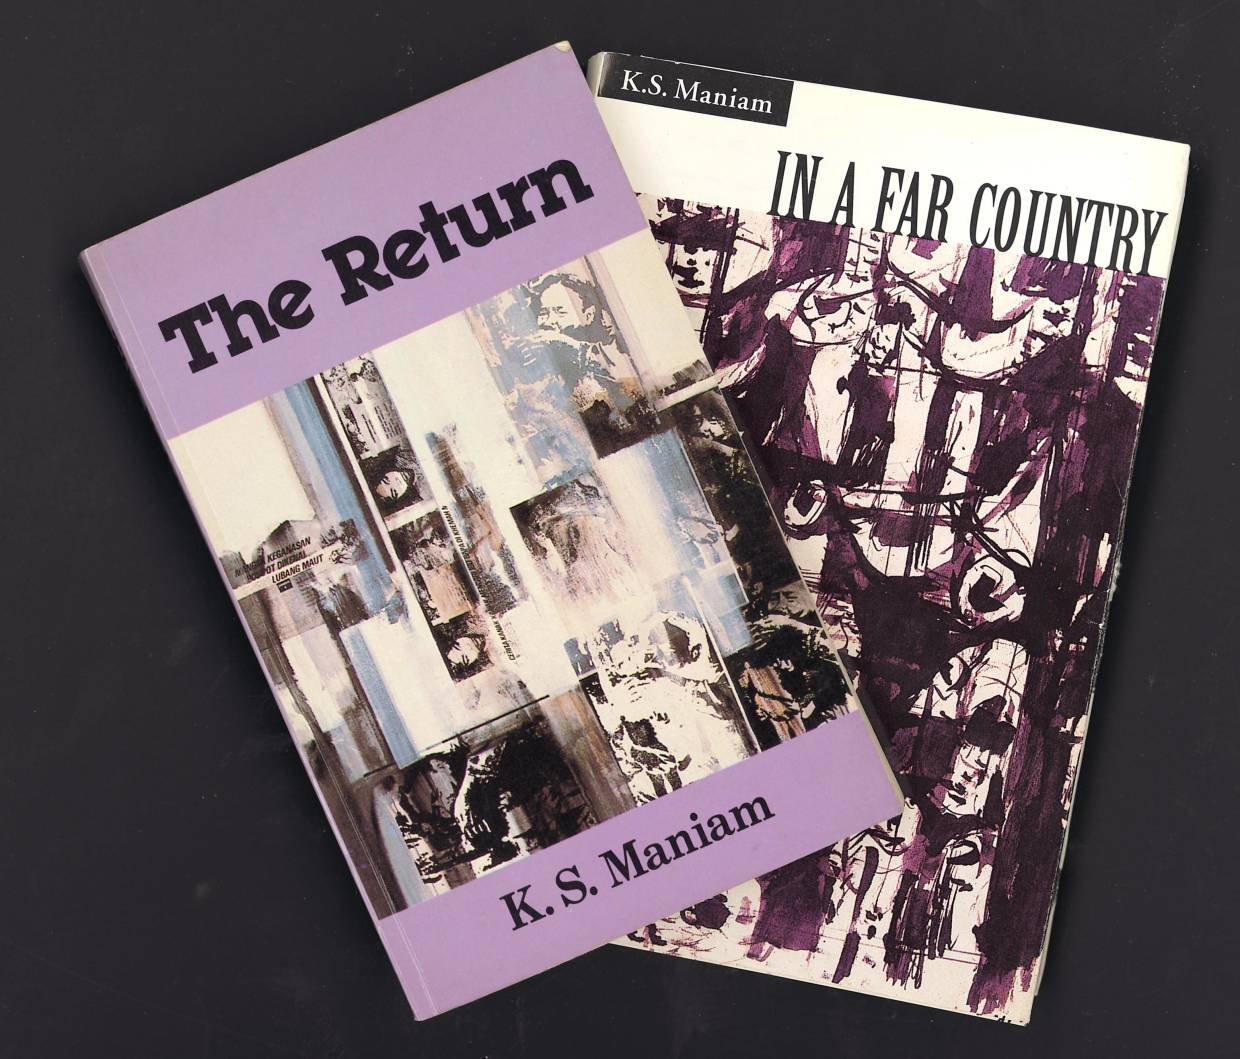 Maniam's first two novels - 'The Return' (1981) and 'In A Far Country' (1993). Photo: Filepic